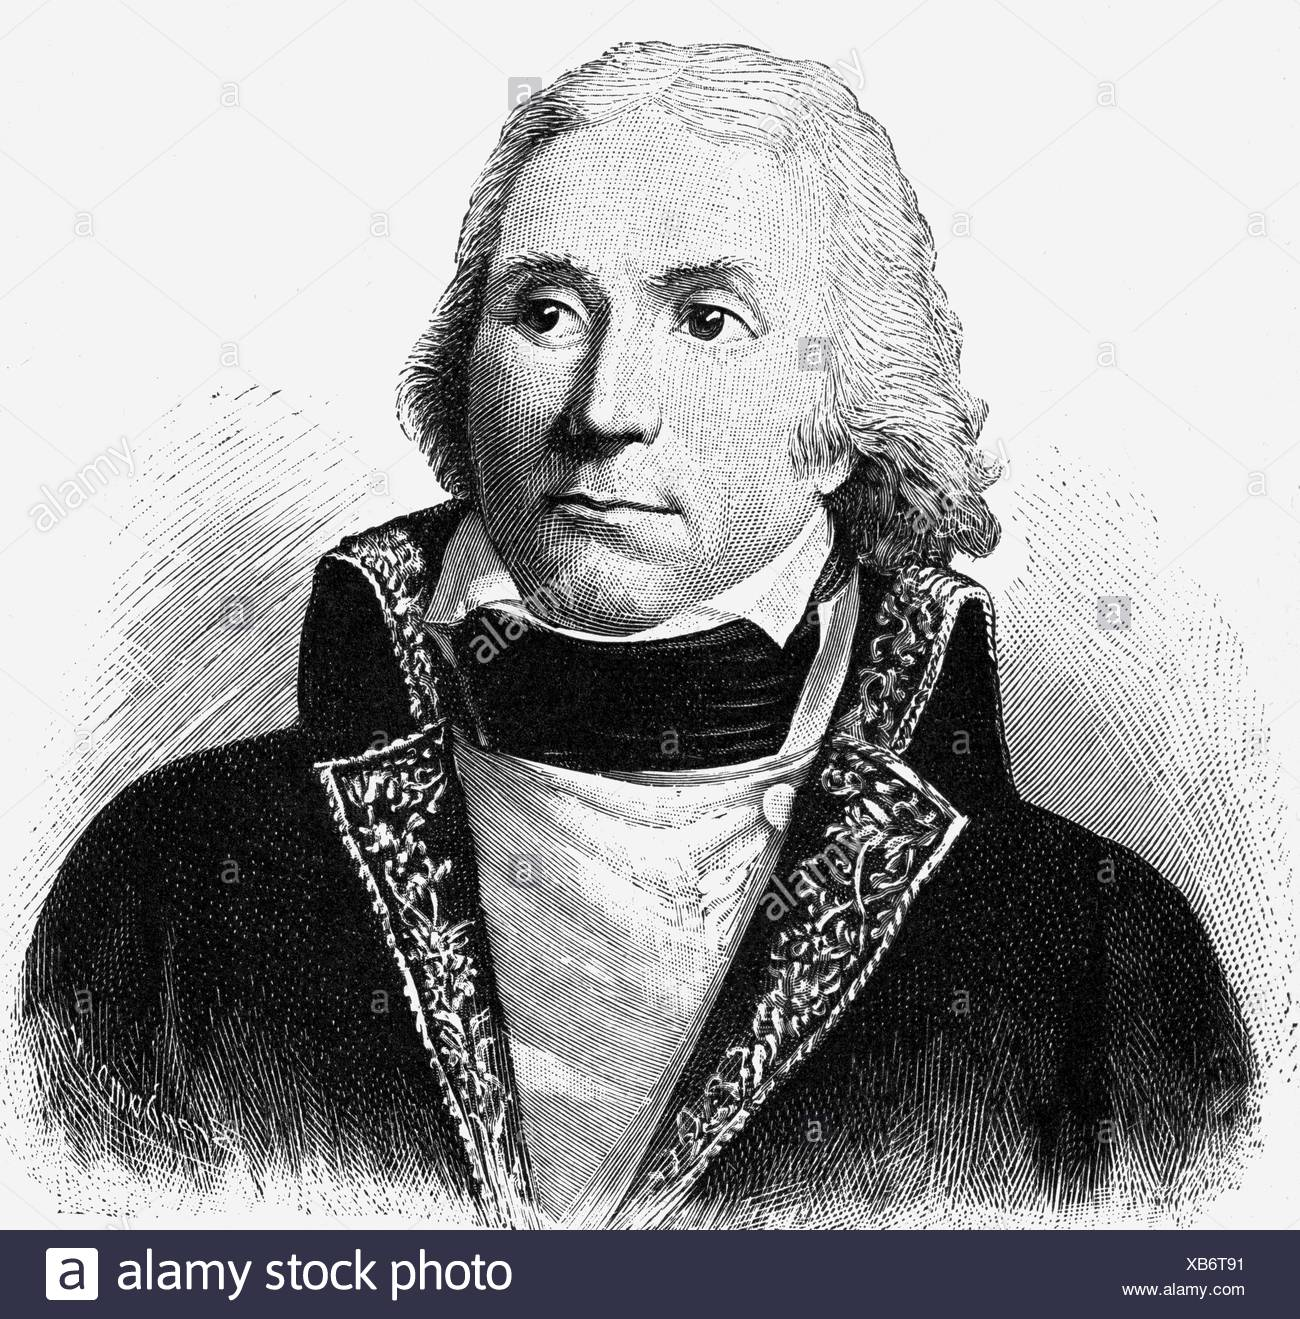 Masséna, André, 6.5.1756 - 14.4.1817, French general, portrait, wood engraving by Brendamour, 19th century, , Stock Photo